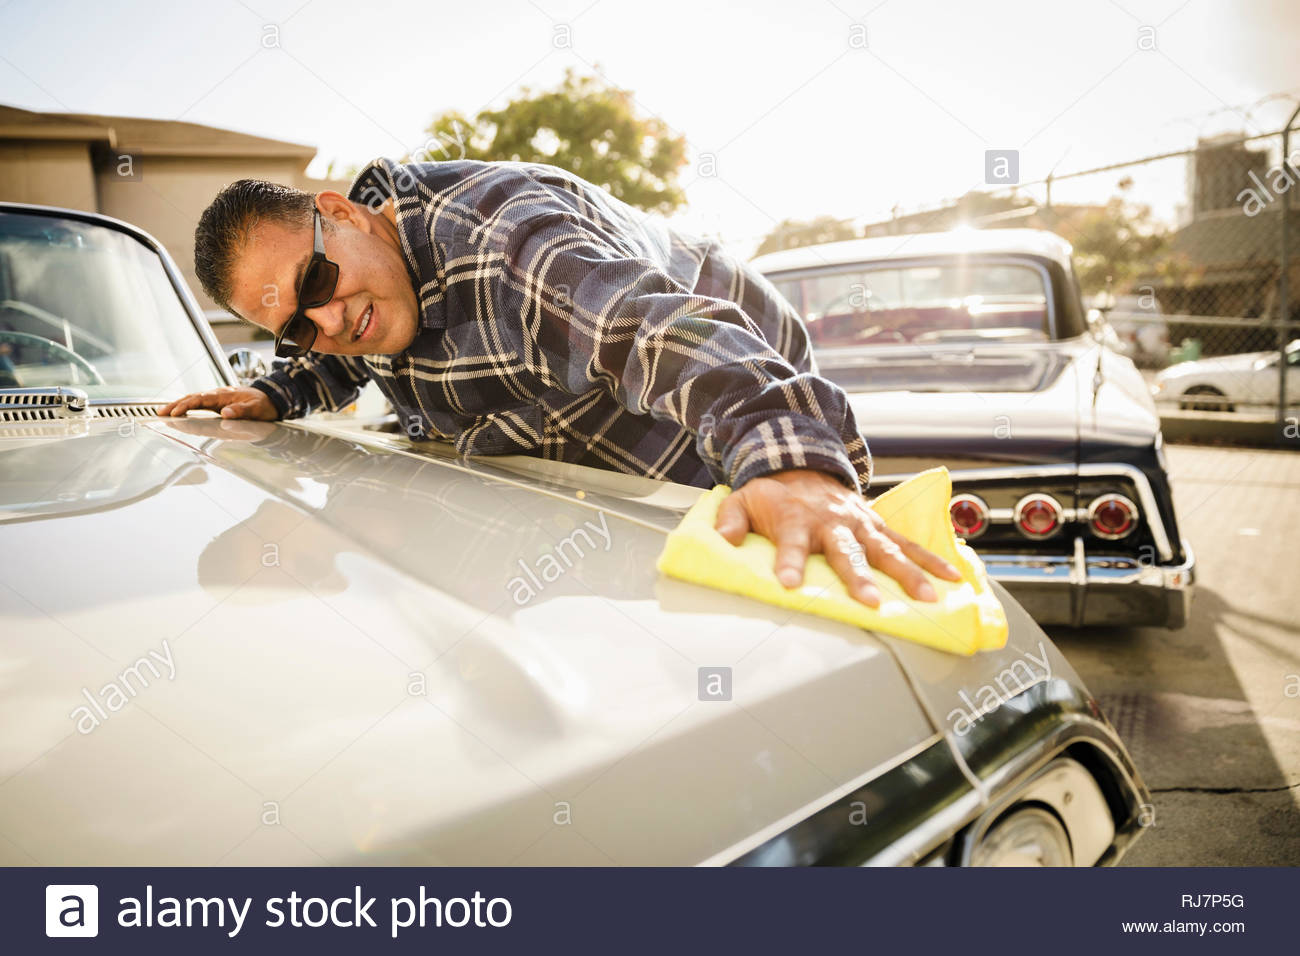 Latinx man waxing vintage car in sunny parking lot - Stock Image